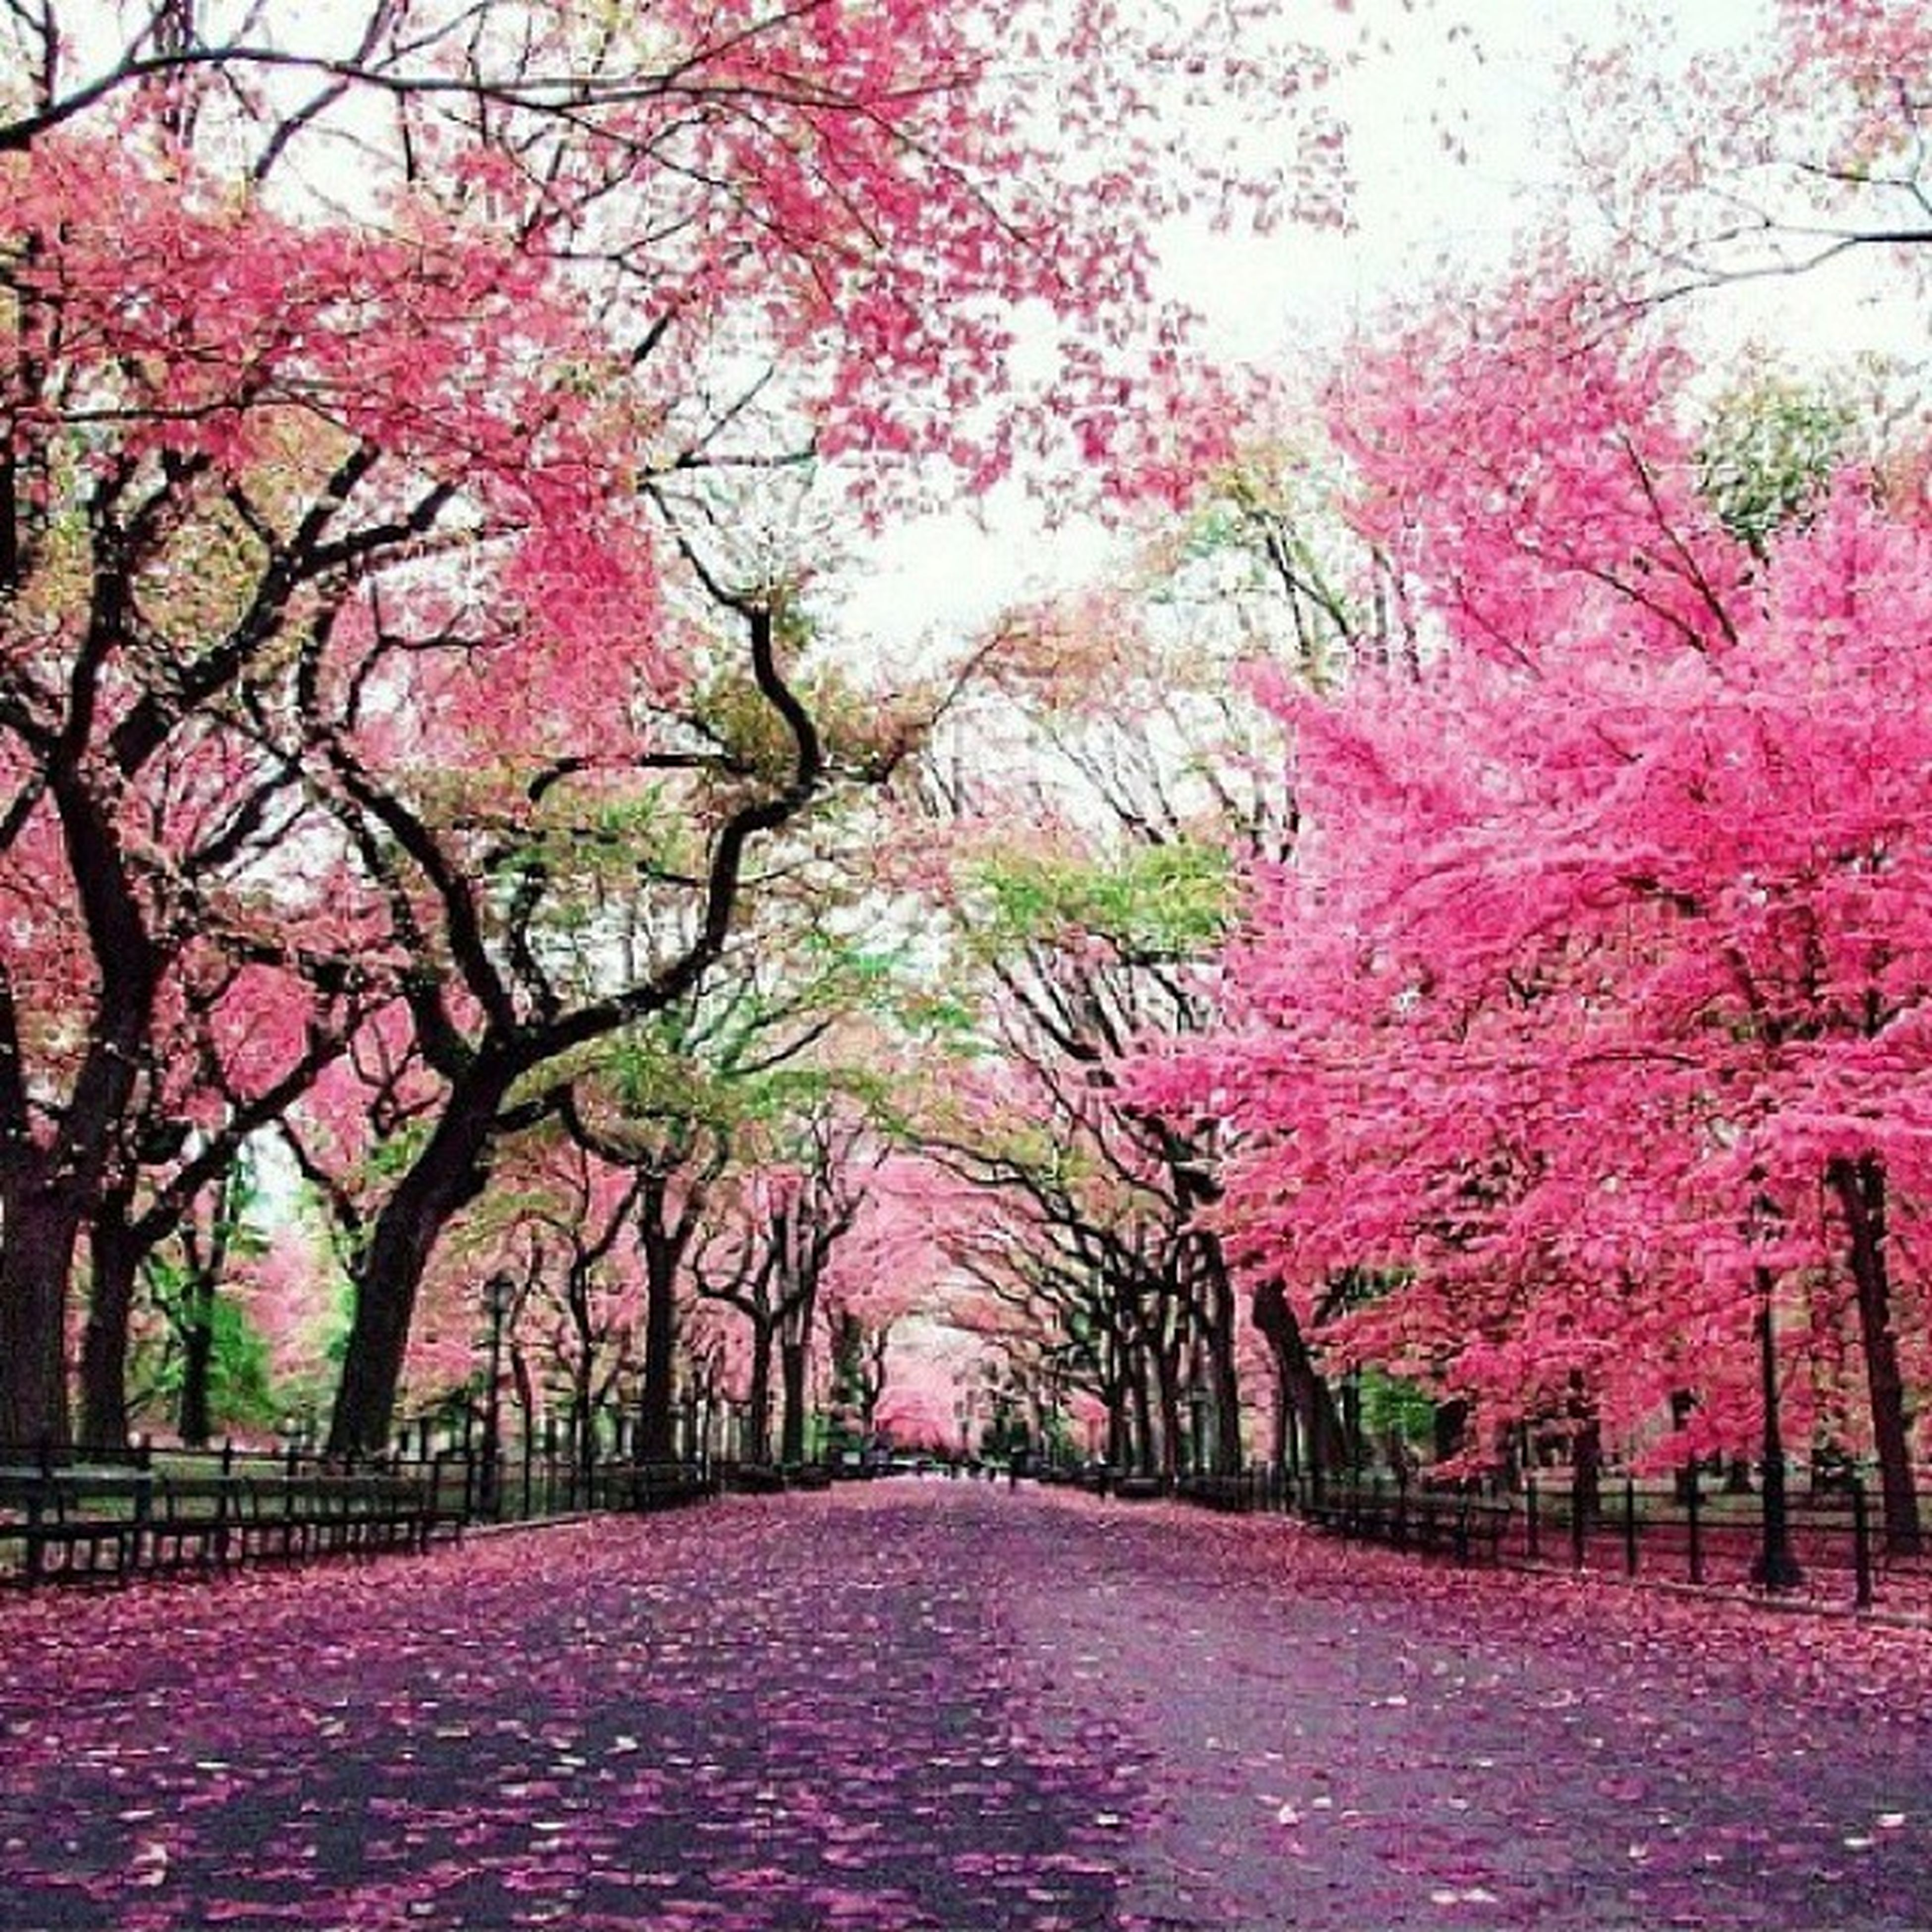 tree, the way forward, autumn, pink color, change, season, beauty in nature, nature, red, diminishing perspective, branch, road, growth, tranquility, flower, footpath, treelined, street, tranquil scene, scenics